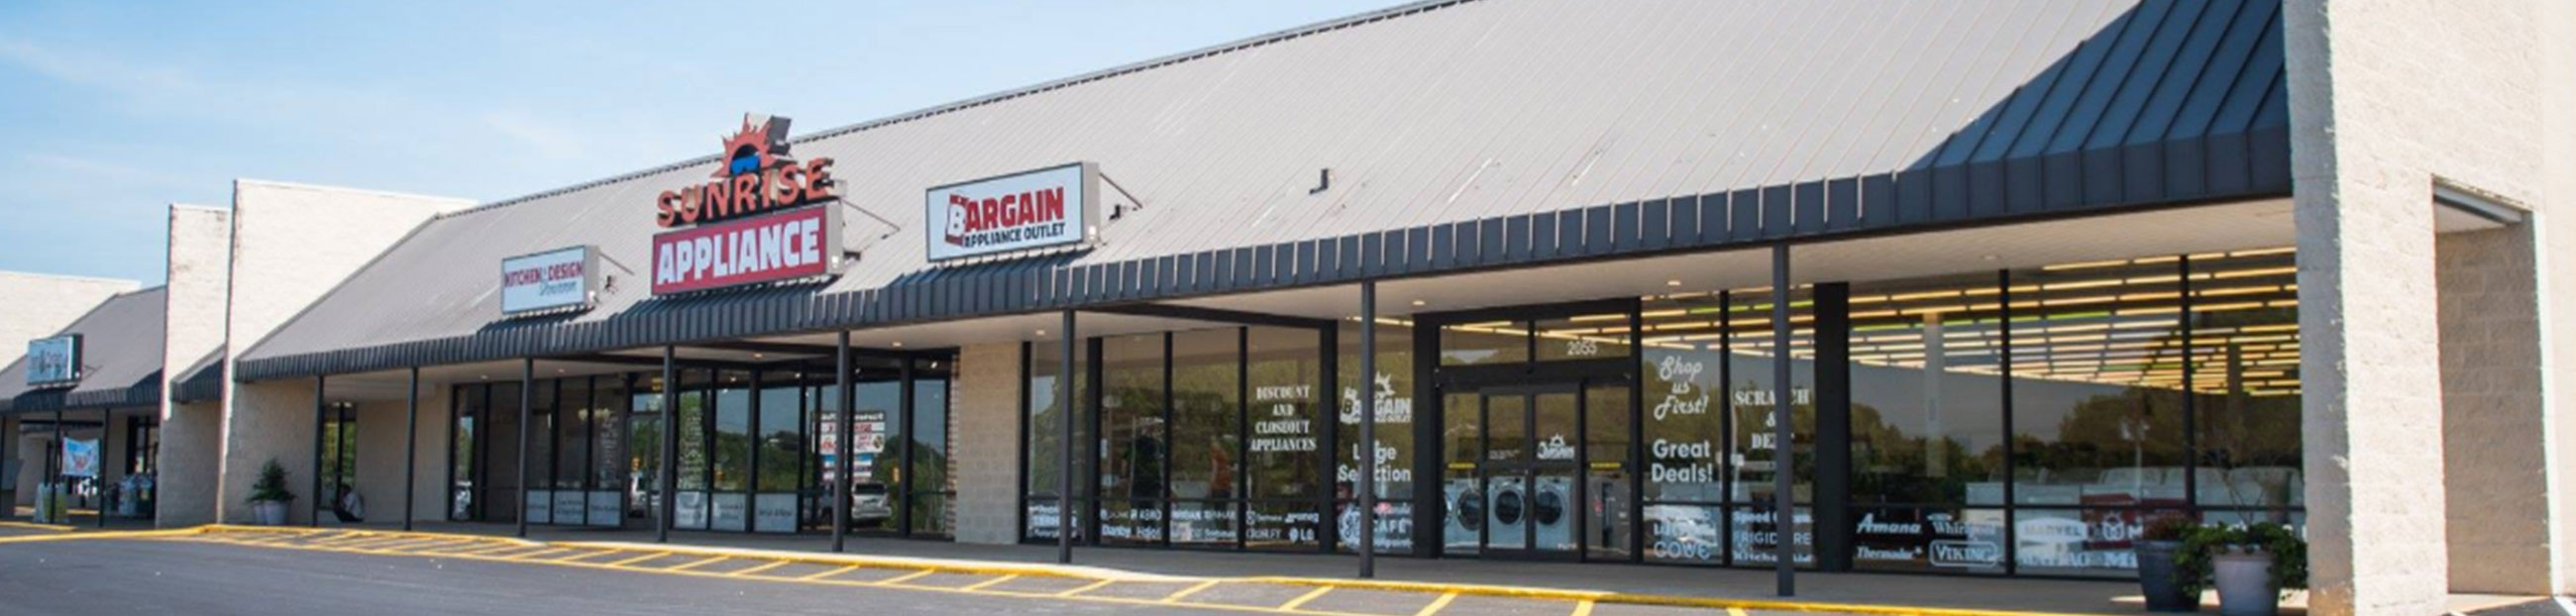 Locally owned Appliance & Appliance Service near Brookford